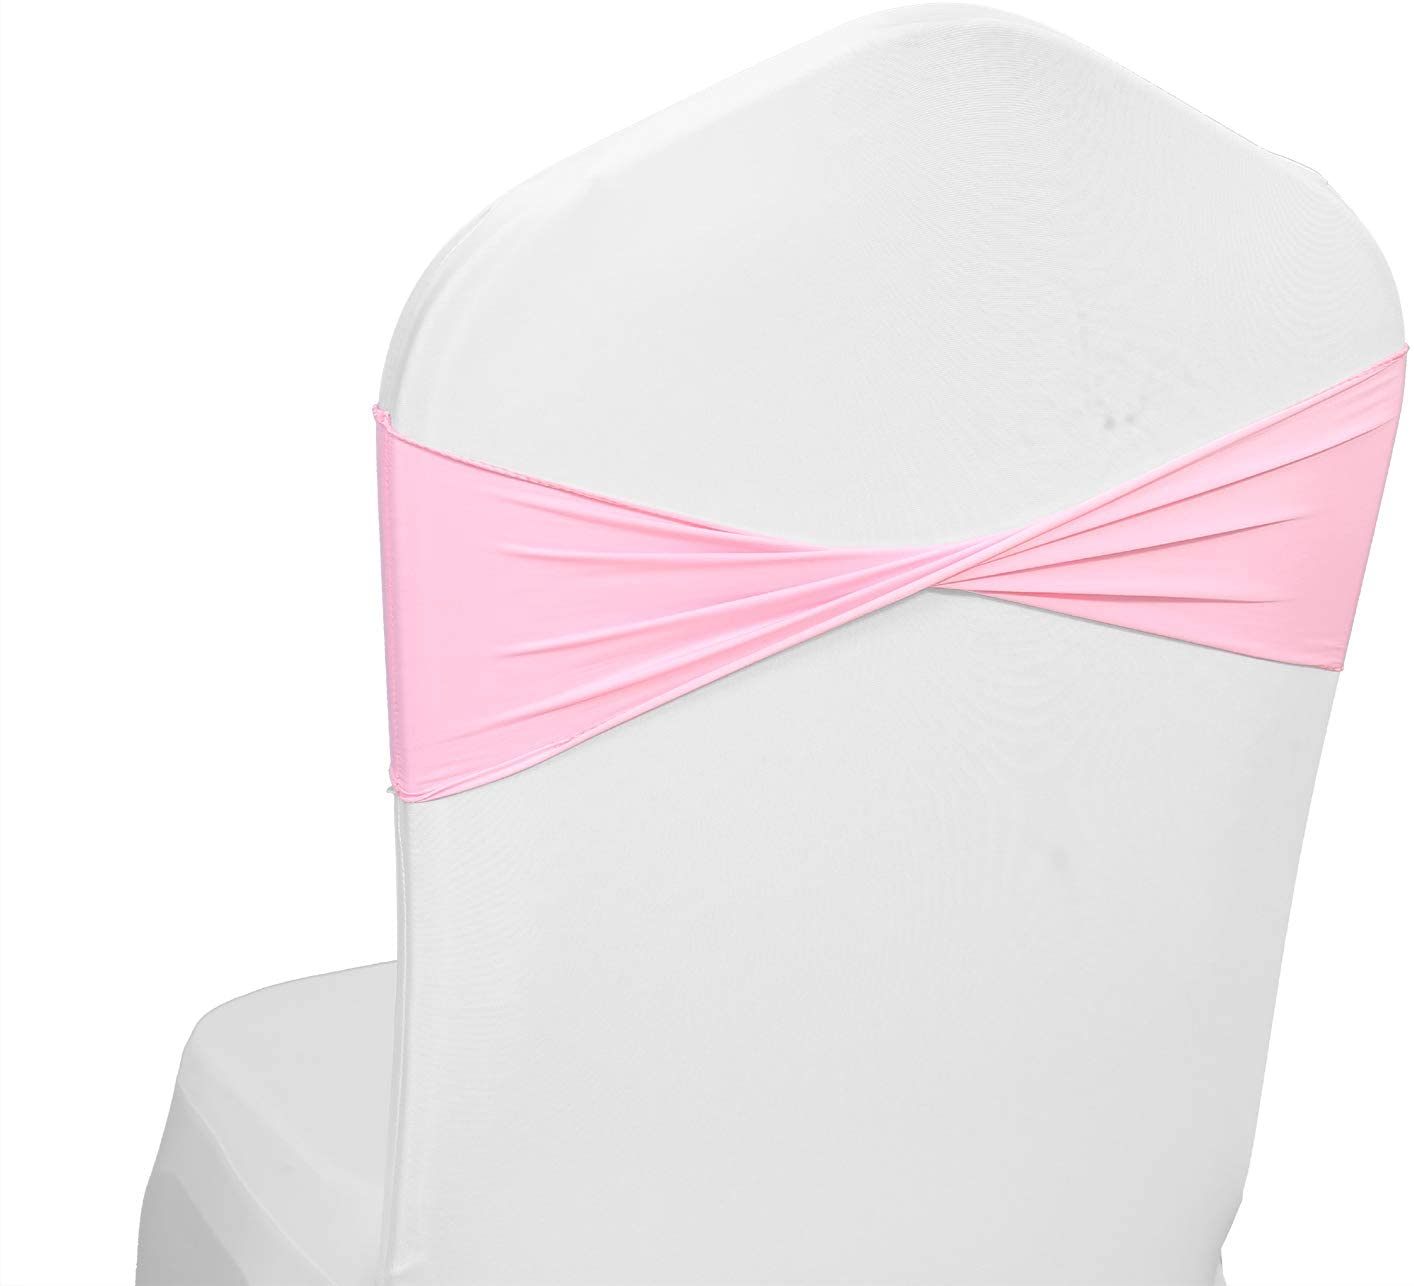 mds Pack of 50 Spandex Chair Sashes Bow sash Elastic Chair Bands Ties Without Buckle for Wedding and Events Decoration Lycra Slider Sashes Bow - Pink